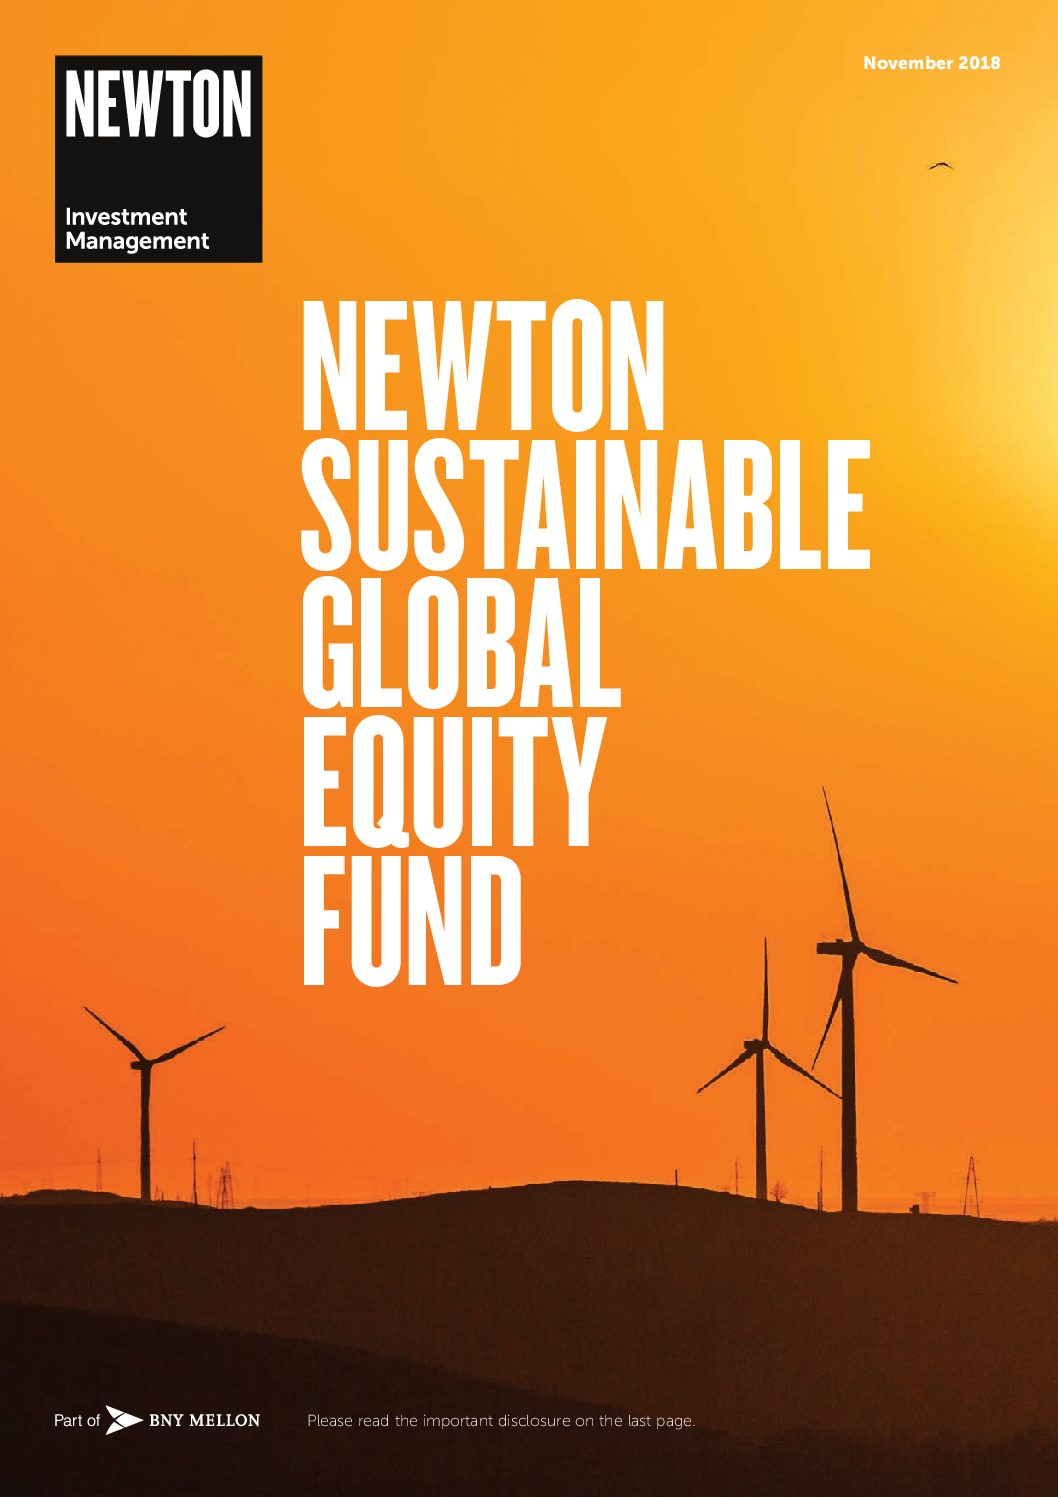 Sustainable Global Equity Fund Brochure